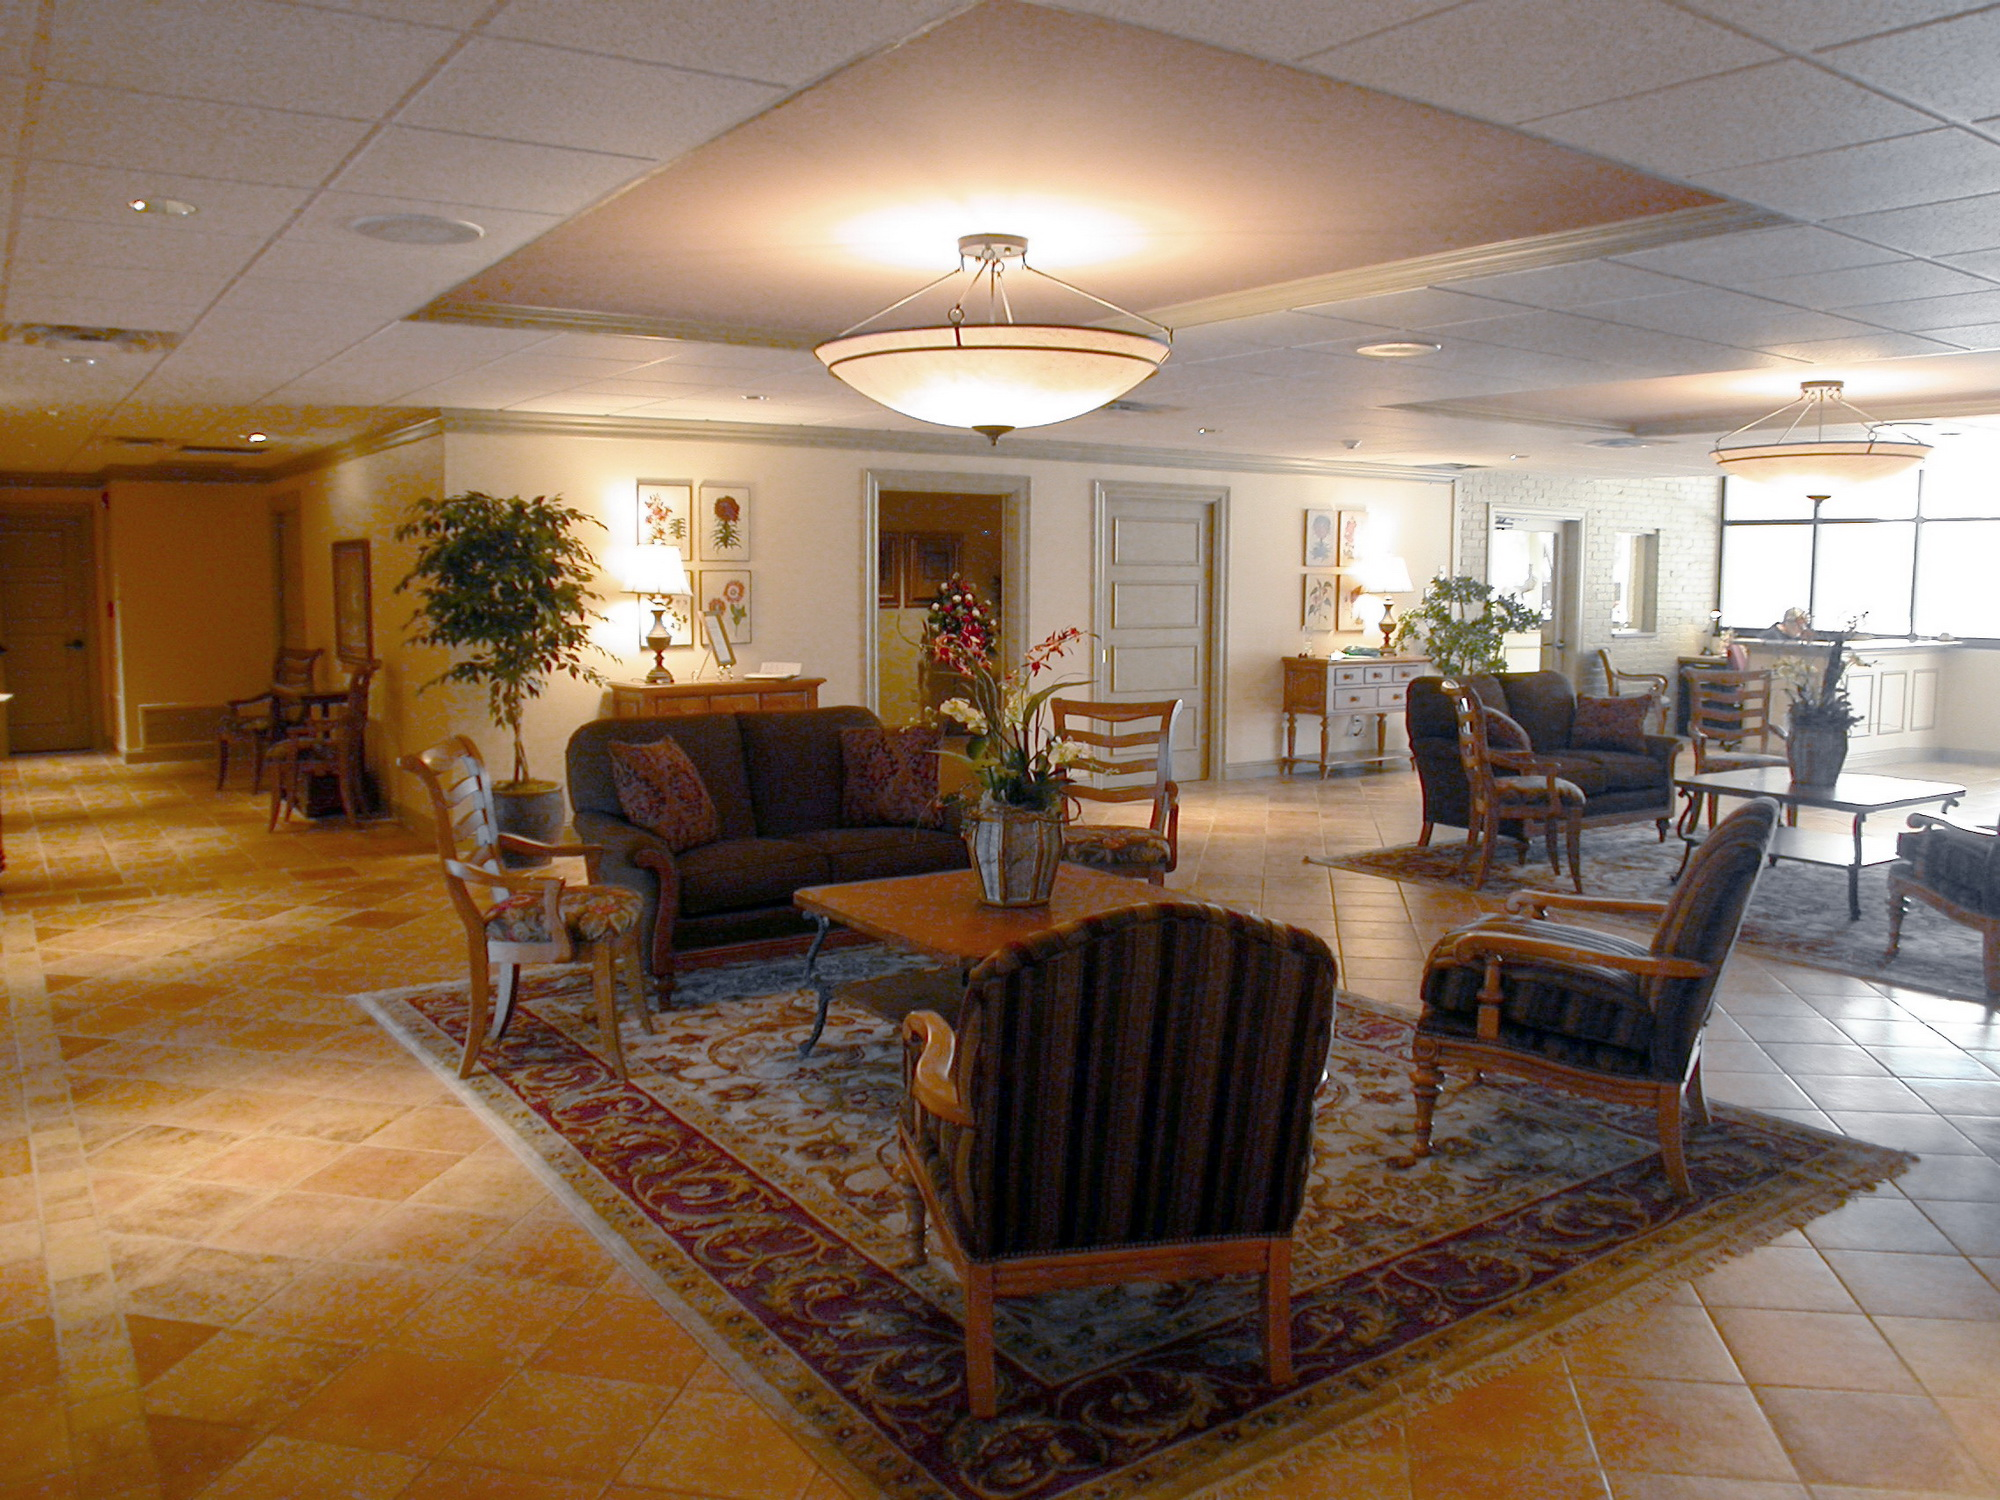 Funeral Home Interior Design Creativity